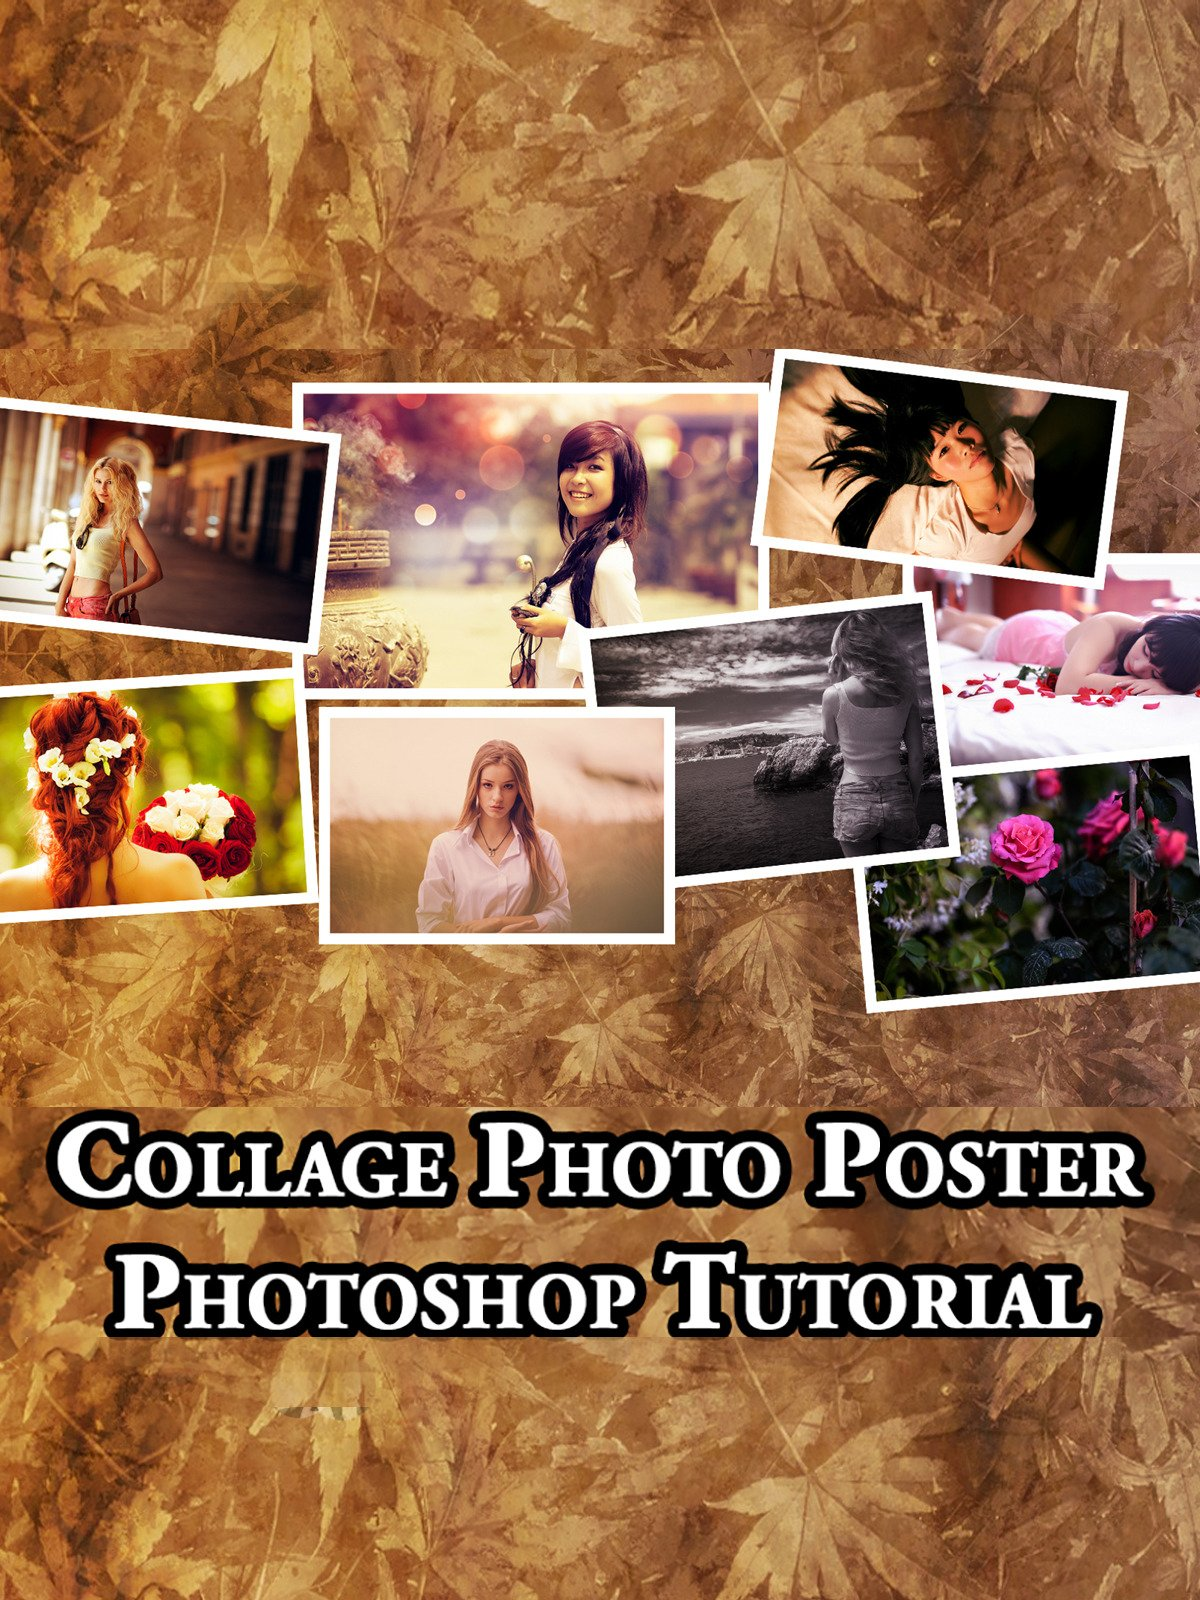 Collage Photo Poster